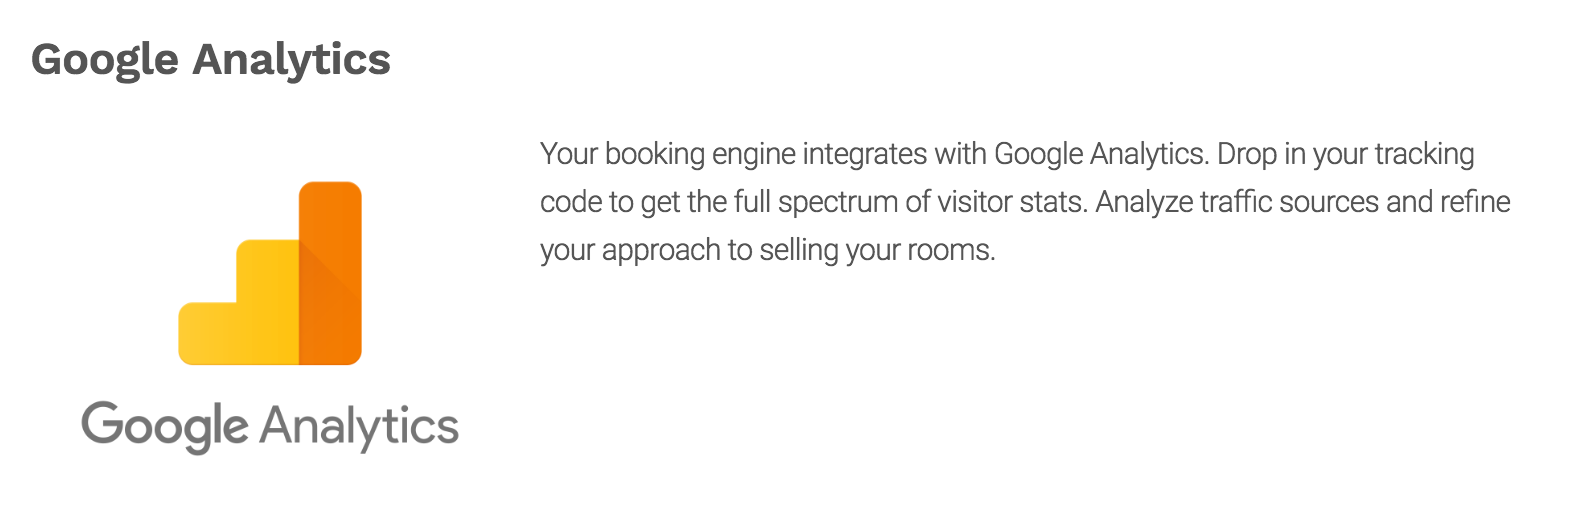 Google Analytics for Hotels, b&b, Vacation Rentals, Villas and Multi Property